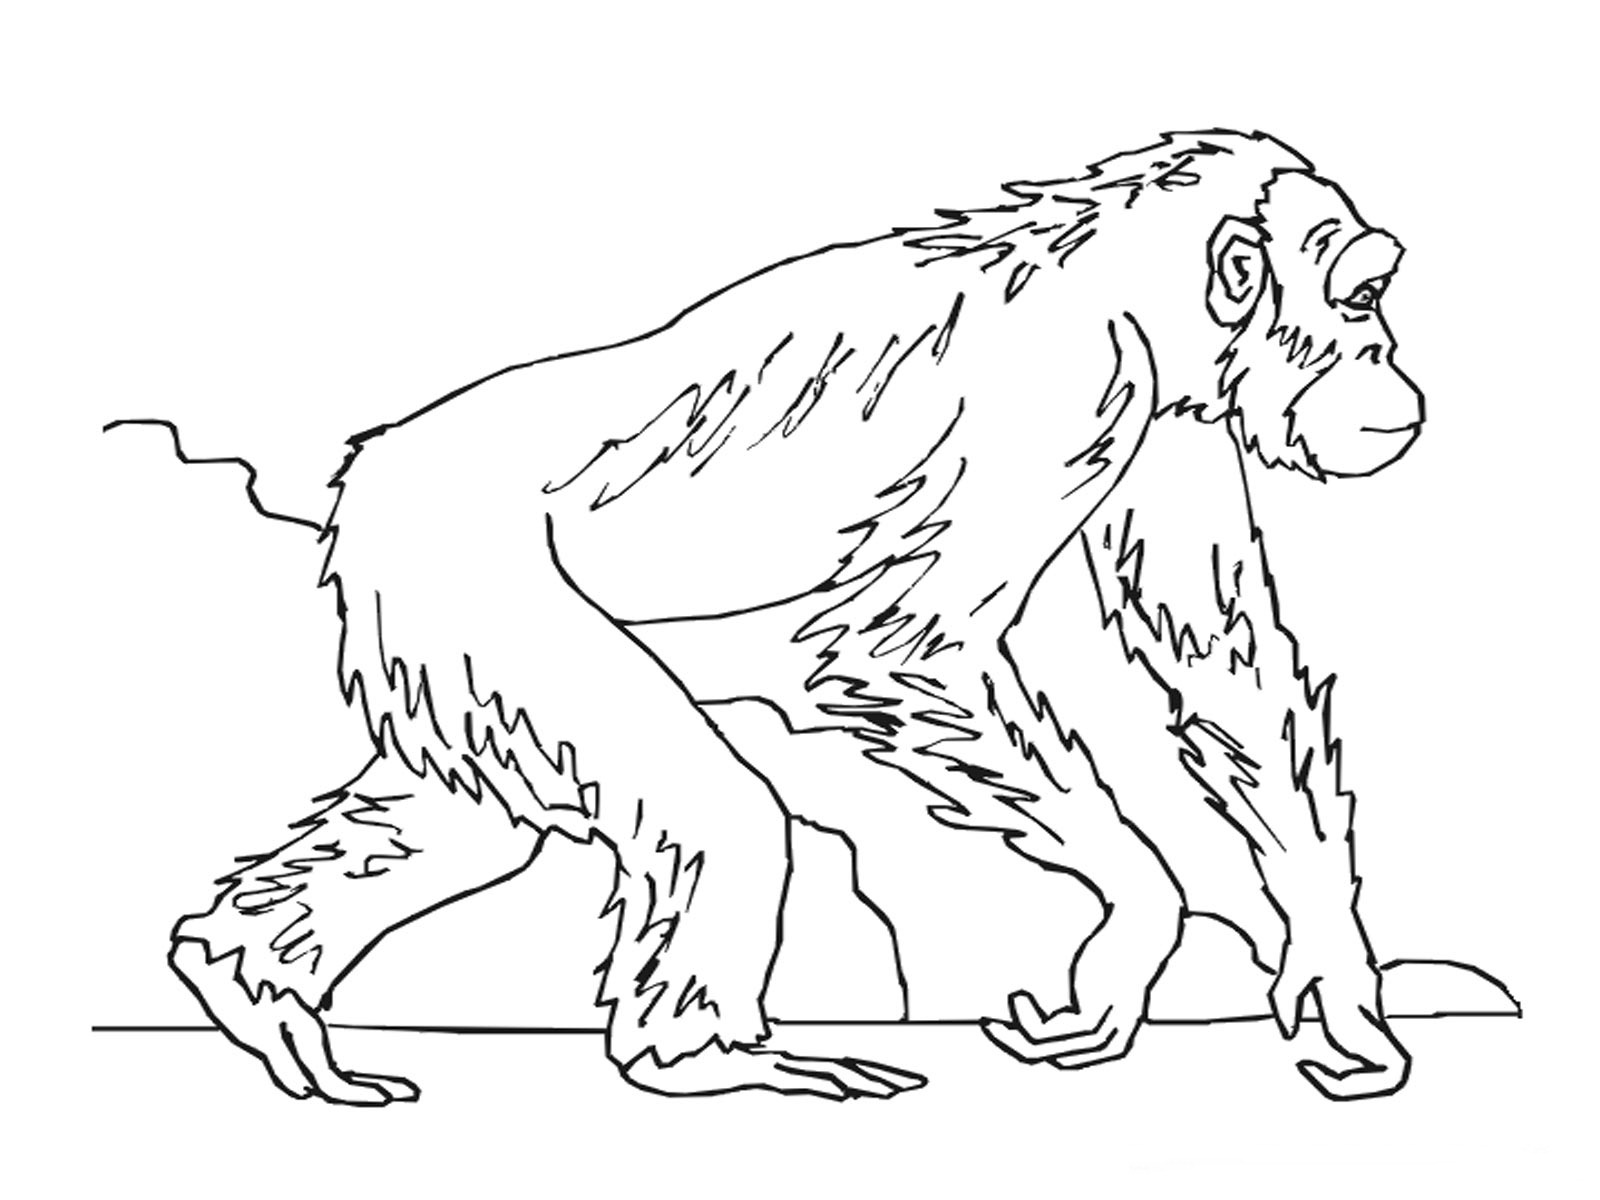 Ape Coloring Pages - Kidsuki   free coloring pages animals realistic